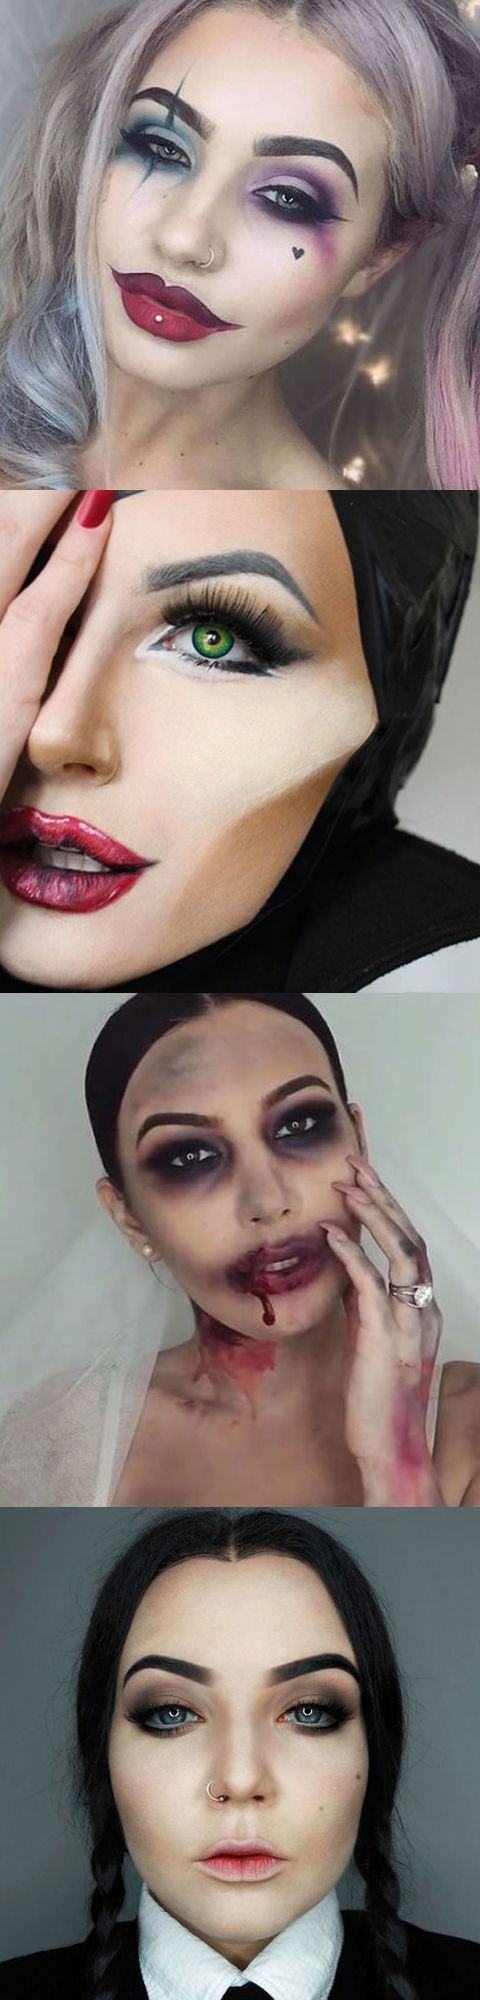 Harley Quinn, Maleficent, Zombie Bride, Wednesday Addams - The most popular Halloween make-up on Pinterest -